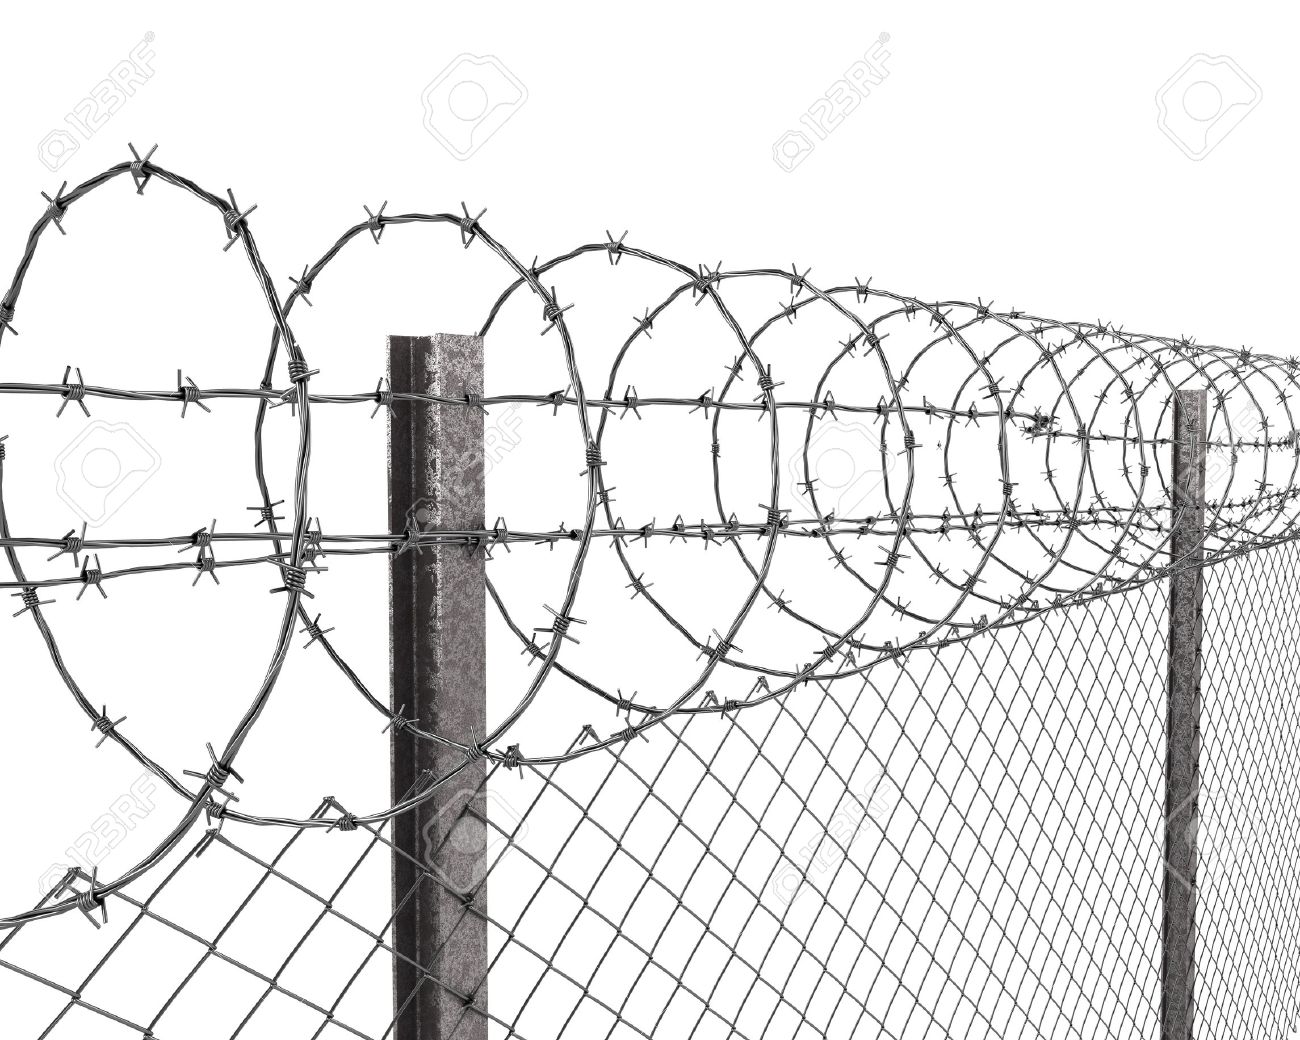 Beautiful Triple Strand Barbed Wire Gallery - The Best Electrical ...